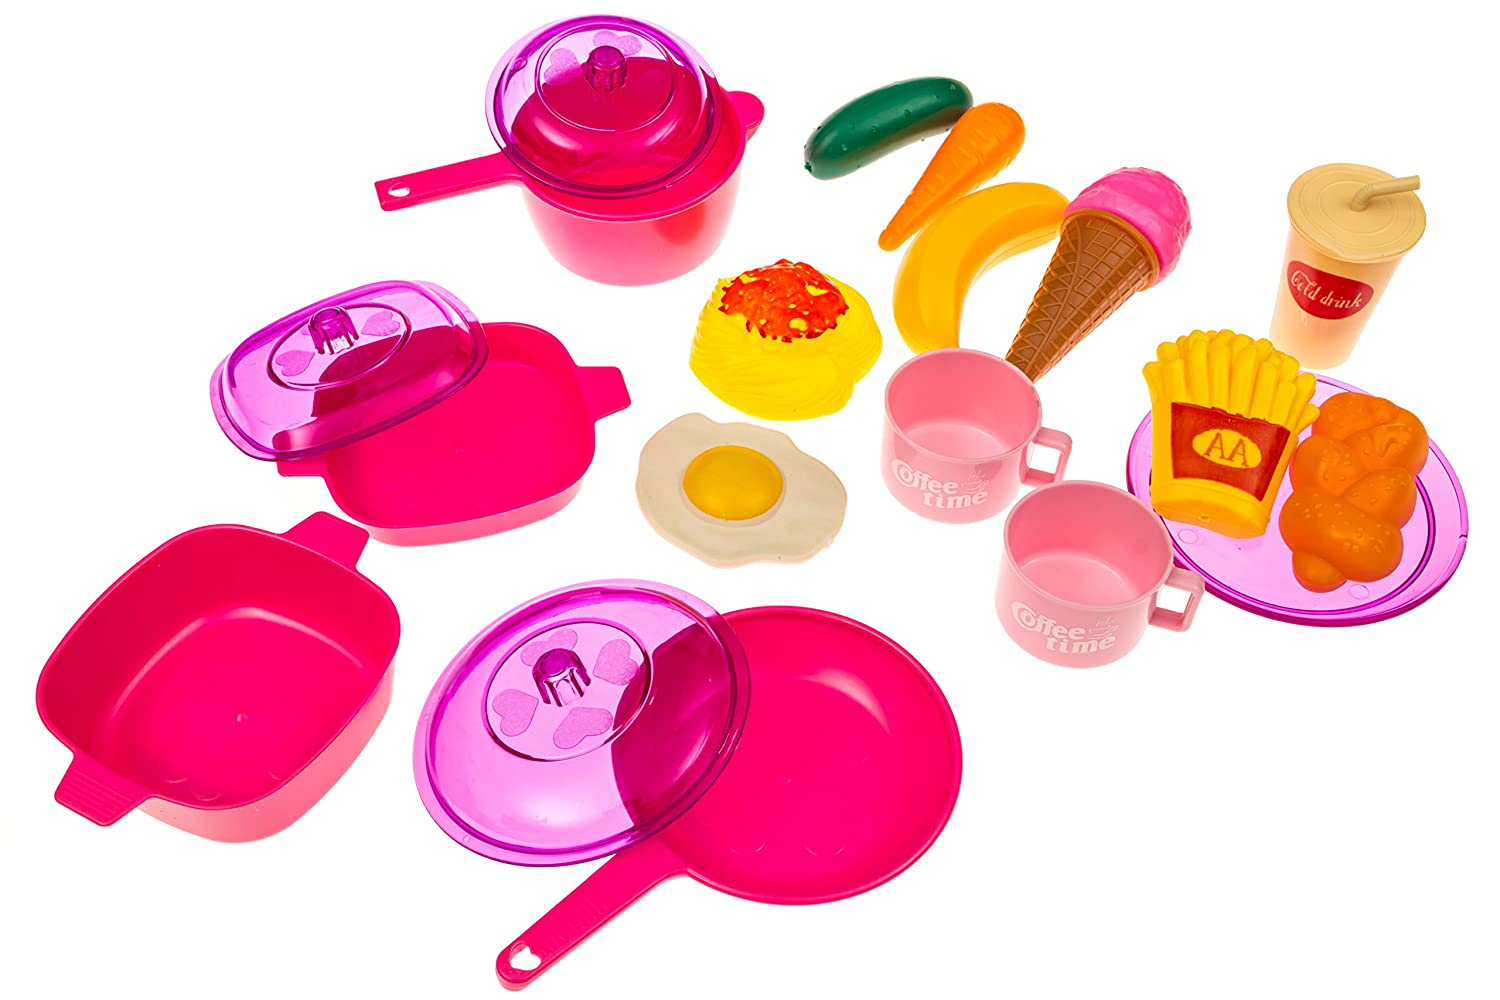 Amazon.com Kids Play Food u0026 Dishes Set Toy Kitchen Accessories Plastic Pots Pans Plates Eggs Dessert Meat Pantry Cookware Utensils ...  sc 1 st  Amazon.com & Amazon.com: Kids Play Food u0026 Dishes Set: Toy Kitchen Accessories ...